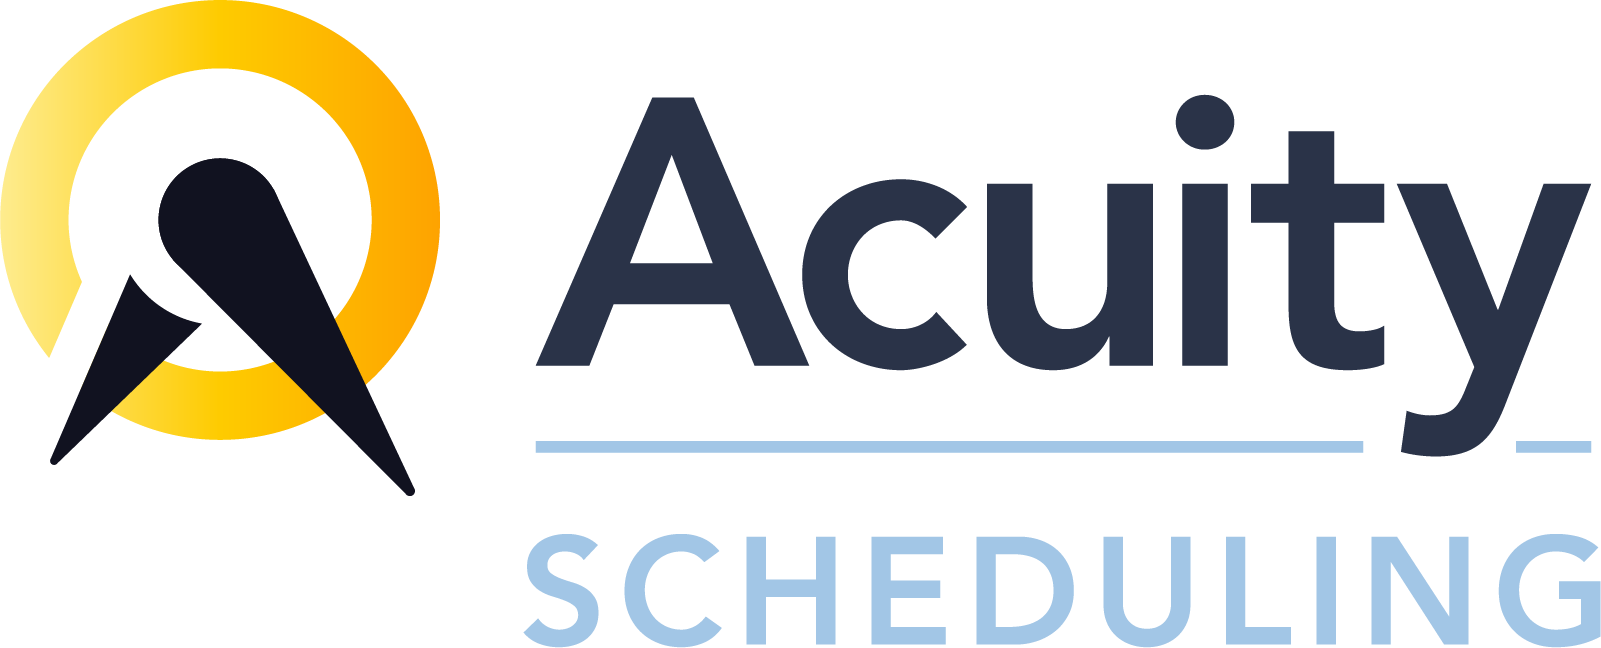 acuity-scheduling.png